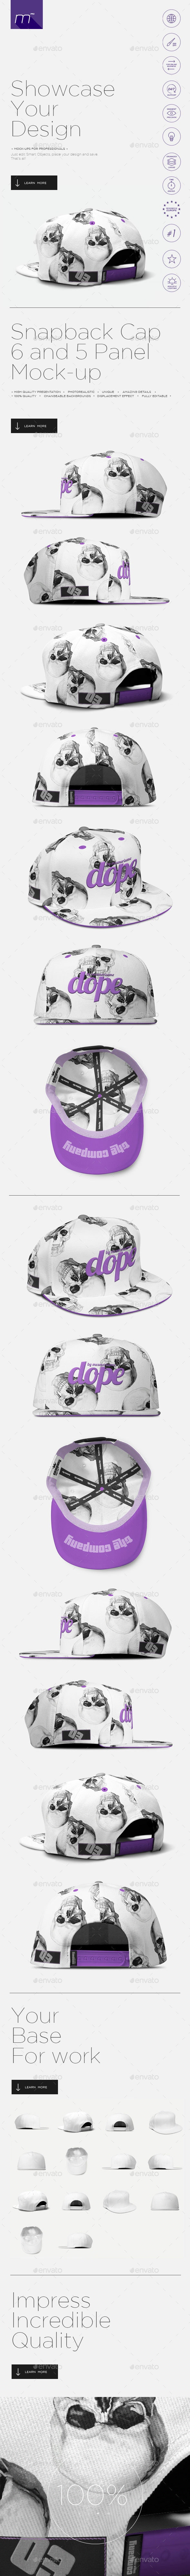 2x Snapback Cap (5 and 6 Panels) Mock-up - Miscellaneous Apparel